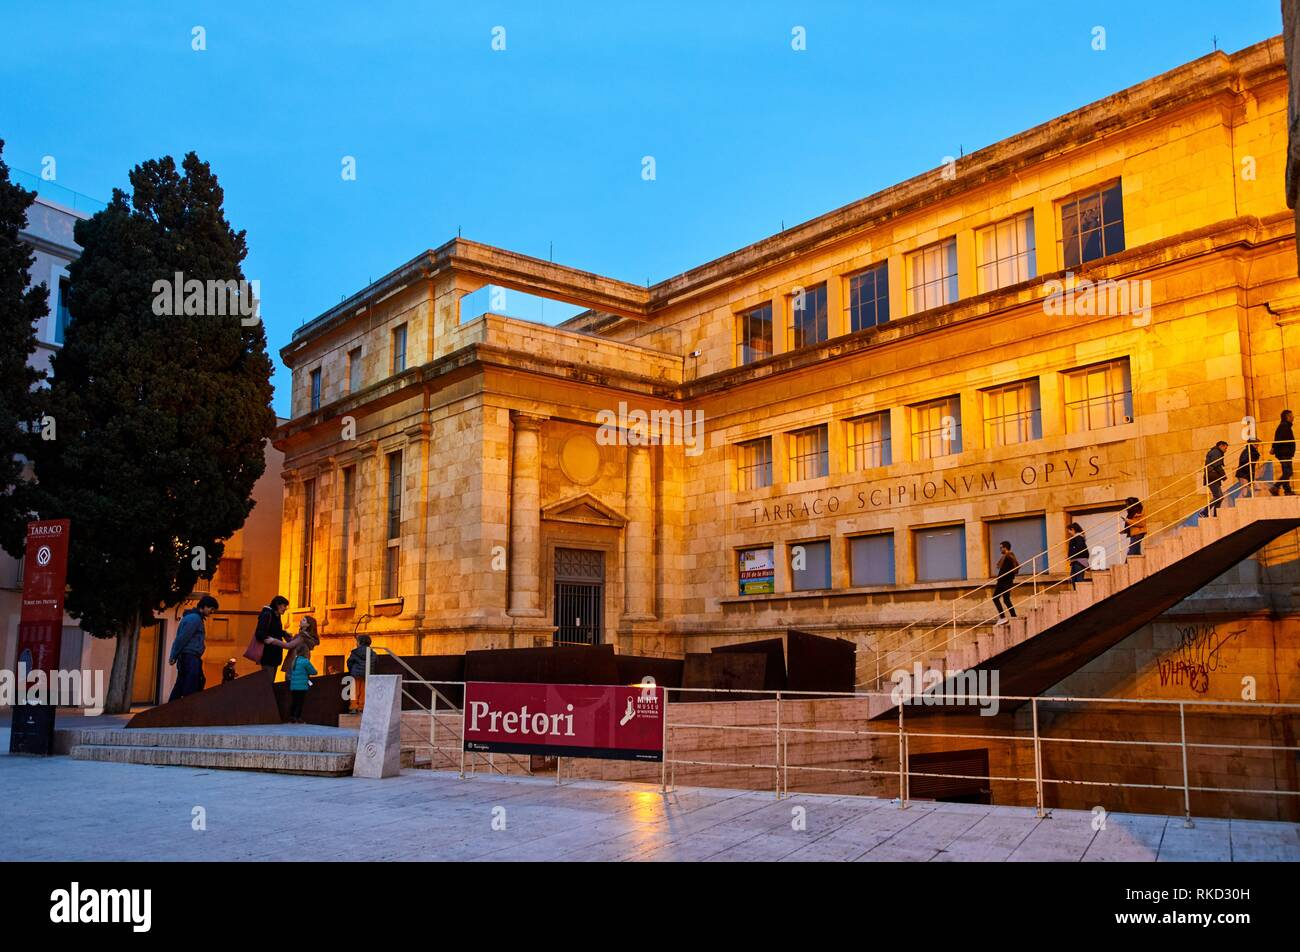 National Archaeological Museum (MNAT), Tarragona City, Catalonia, Spain, Europe - Stock Image